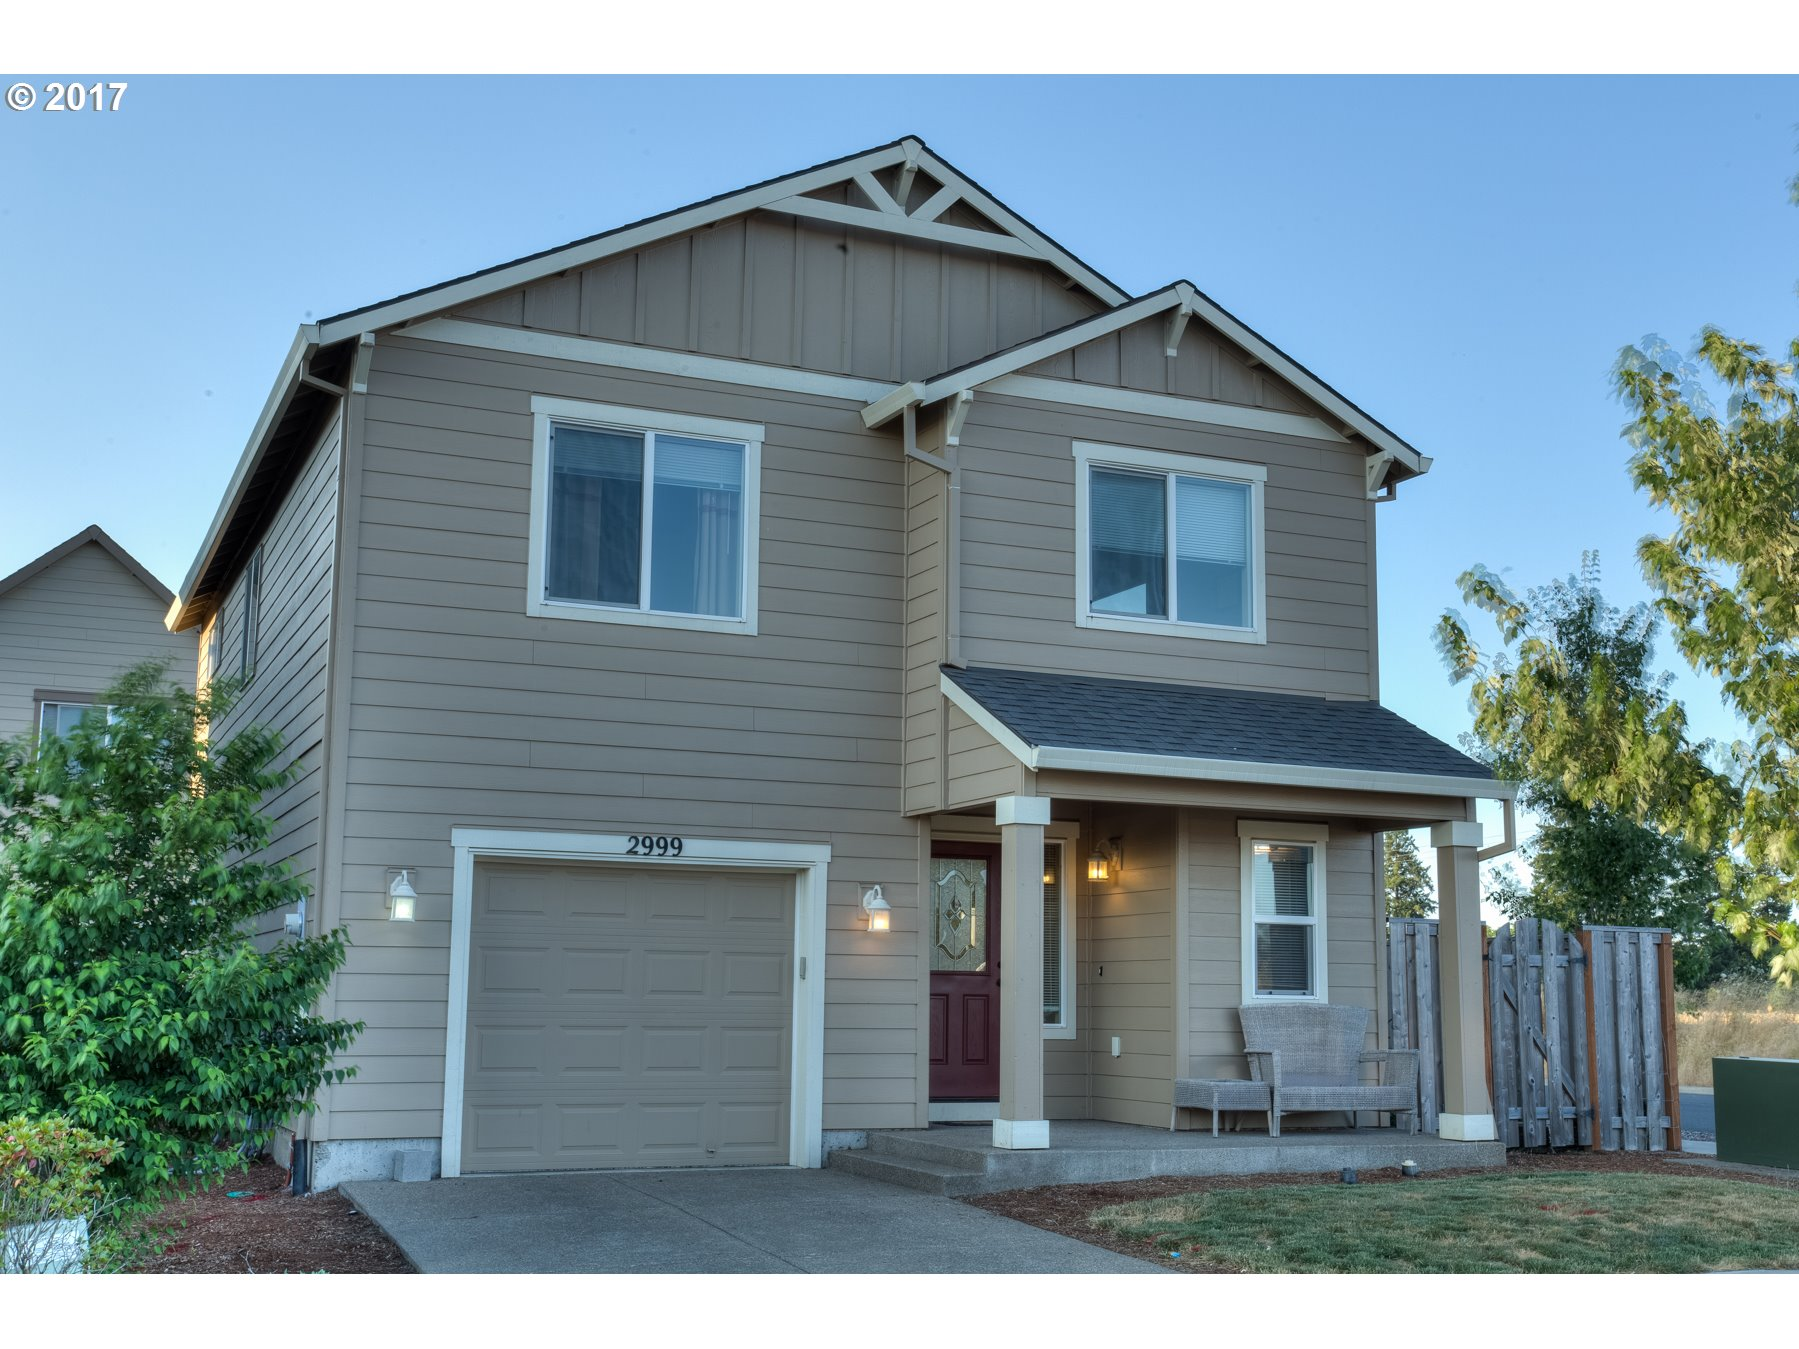 2999 26TH AVE, Forest Grove, OR 97116